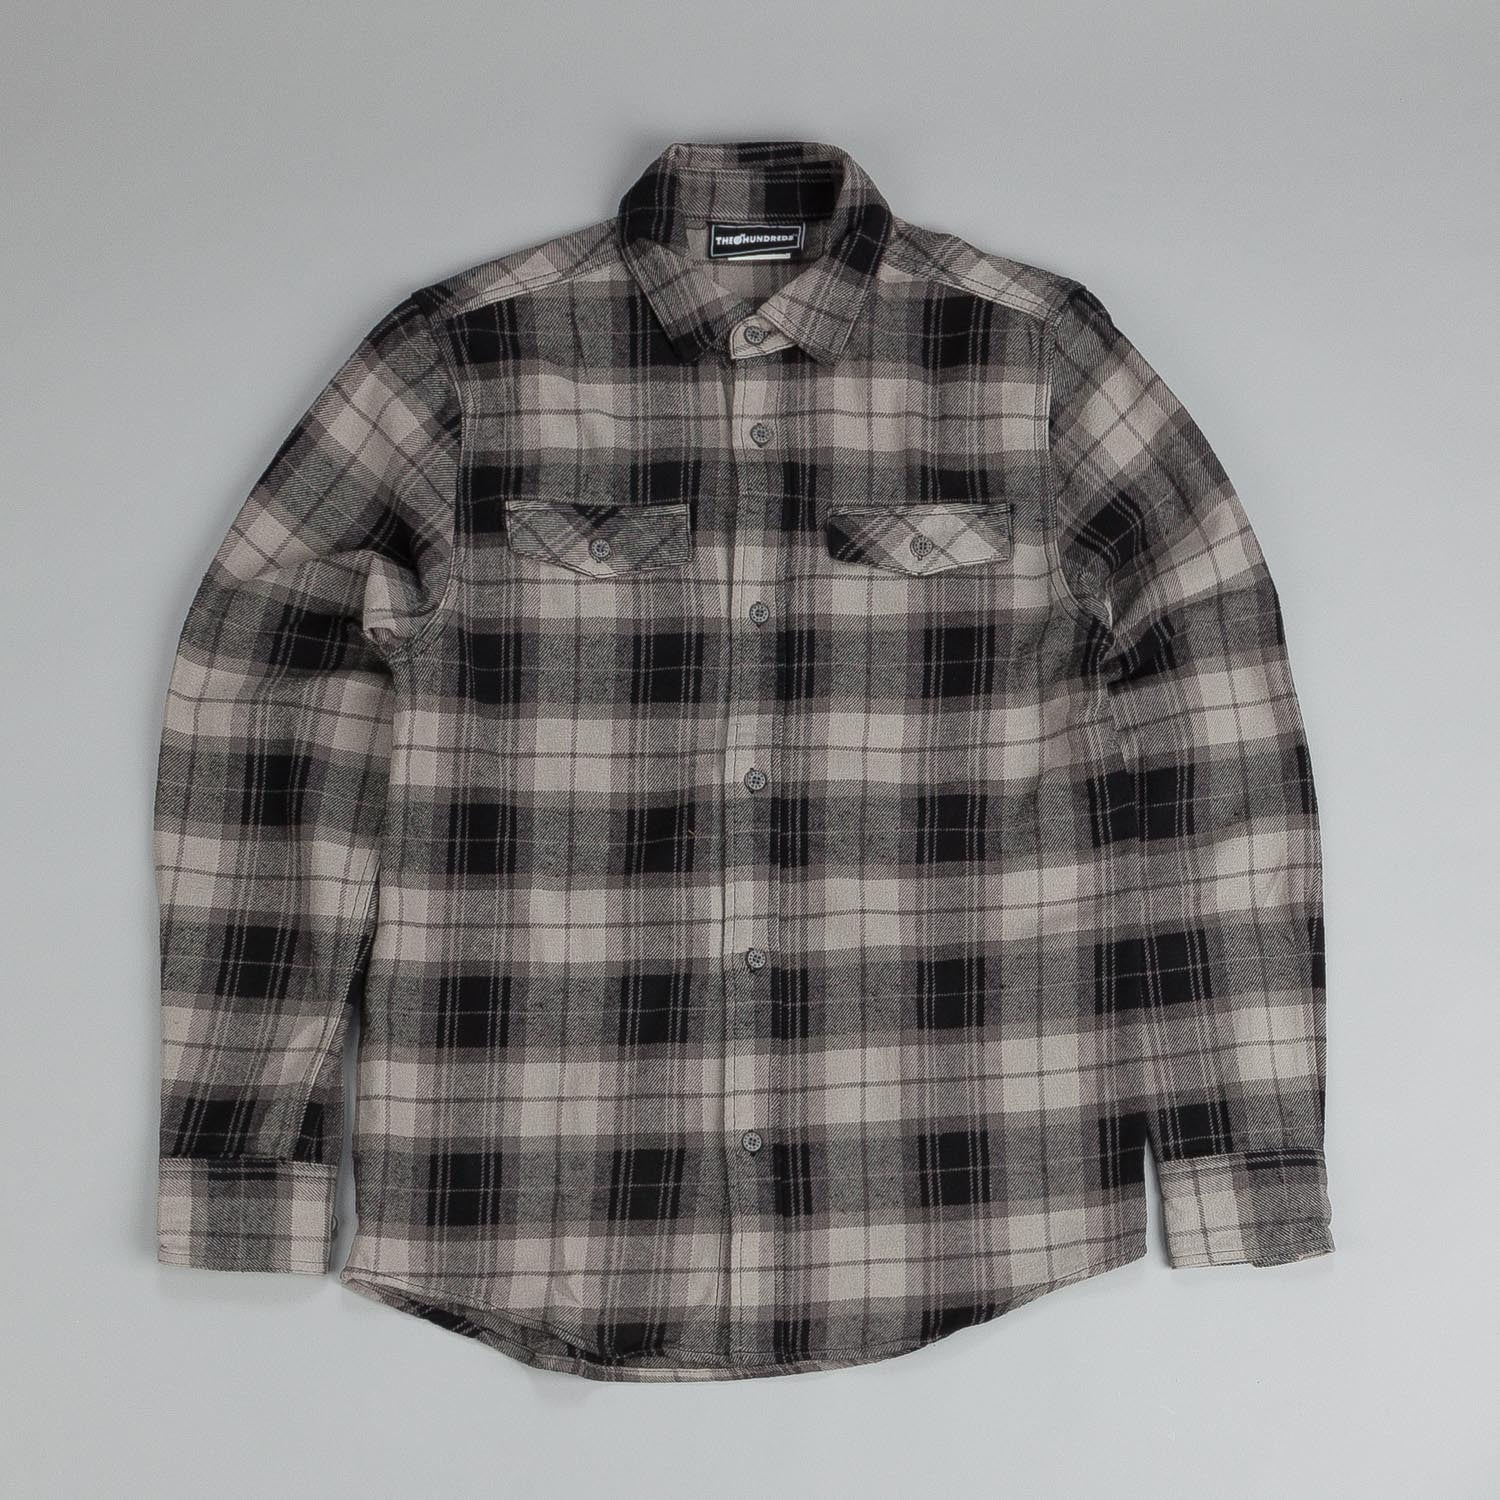 The Hundreds Conduct L/S Flannel Shirt Black